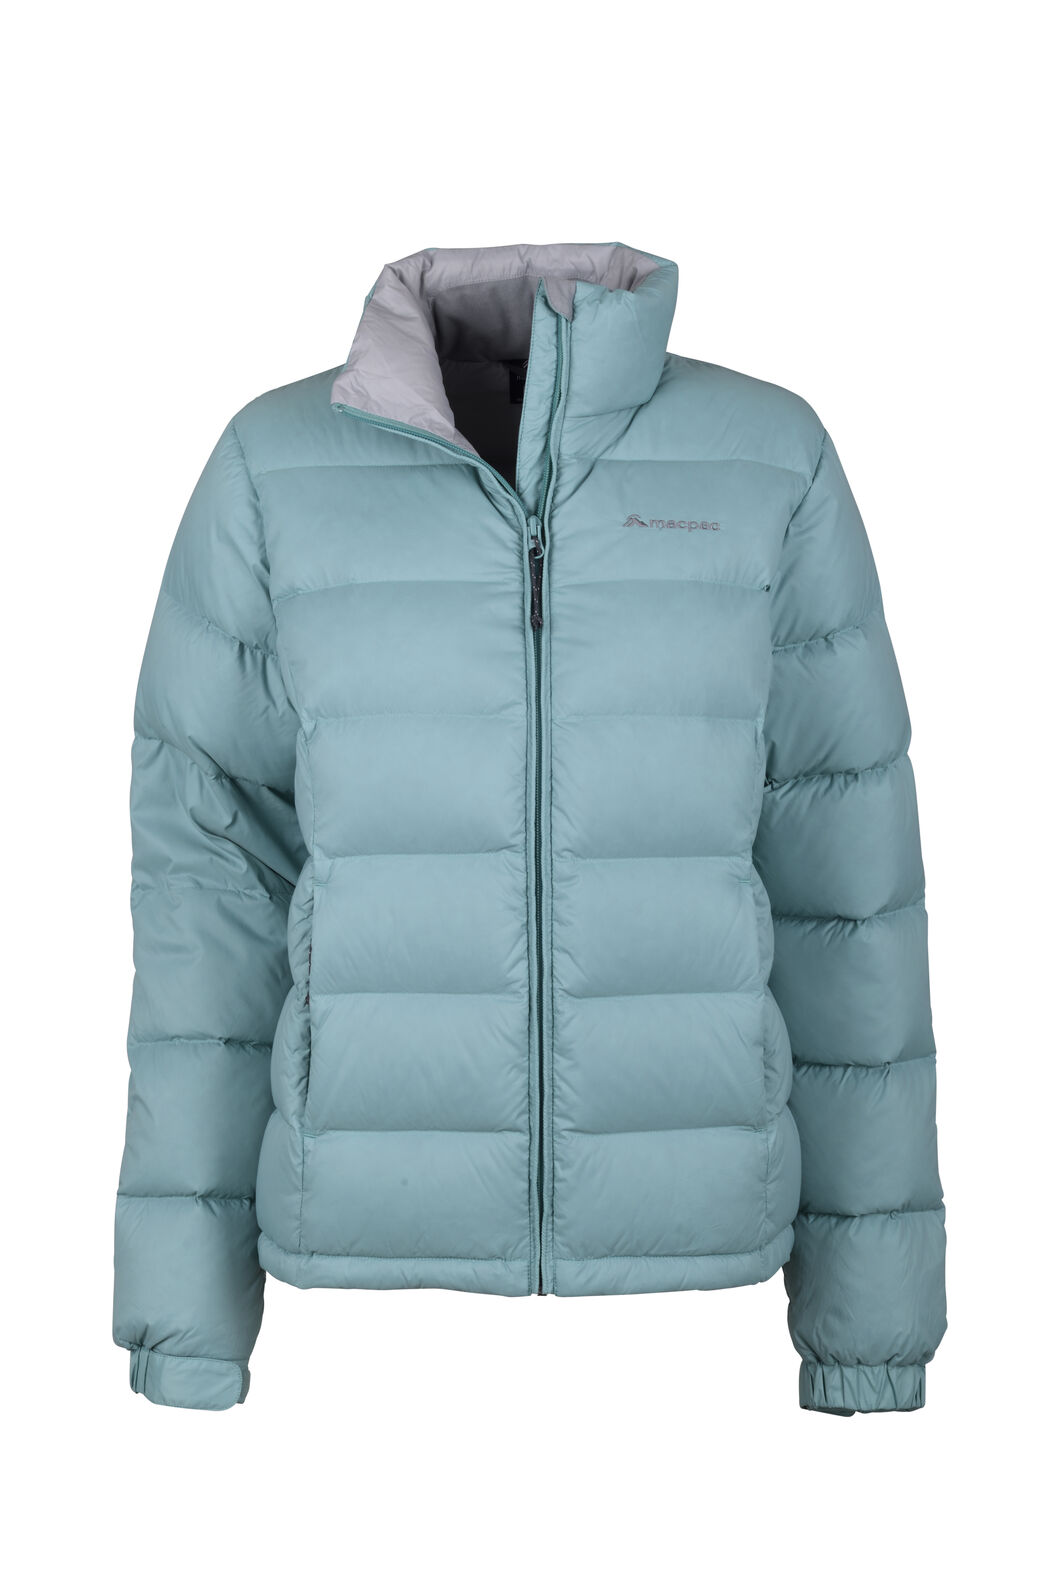 Macpac Halo Down Jacket — Women's, Canton, hi-res